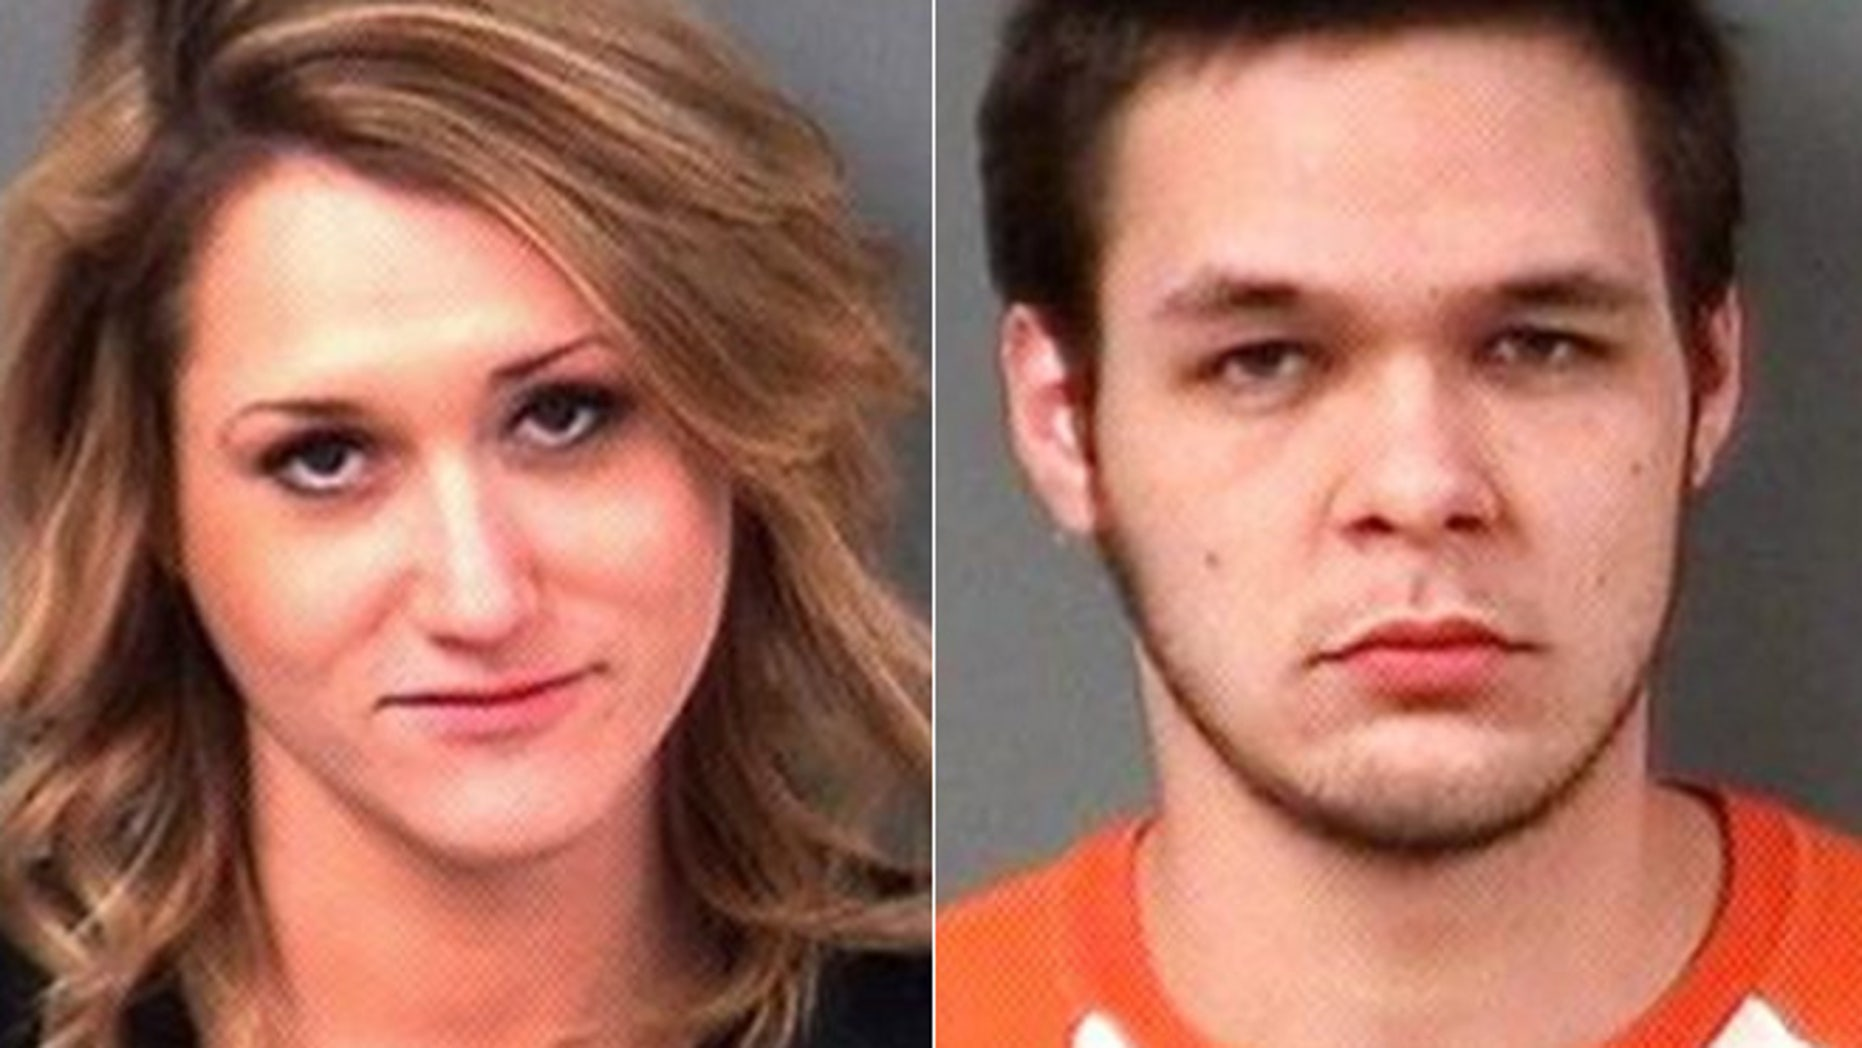 Samantha Christiansen and Derek Gomez were arrested for getting in a Silly String fight at a Walmart.